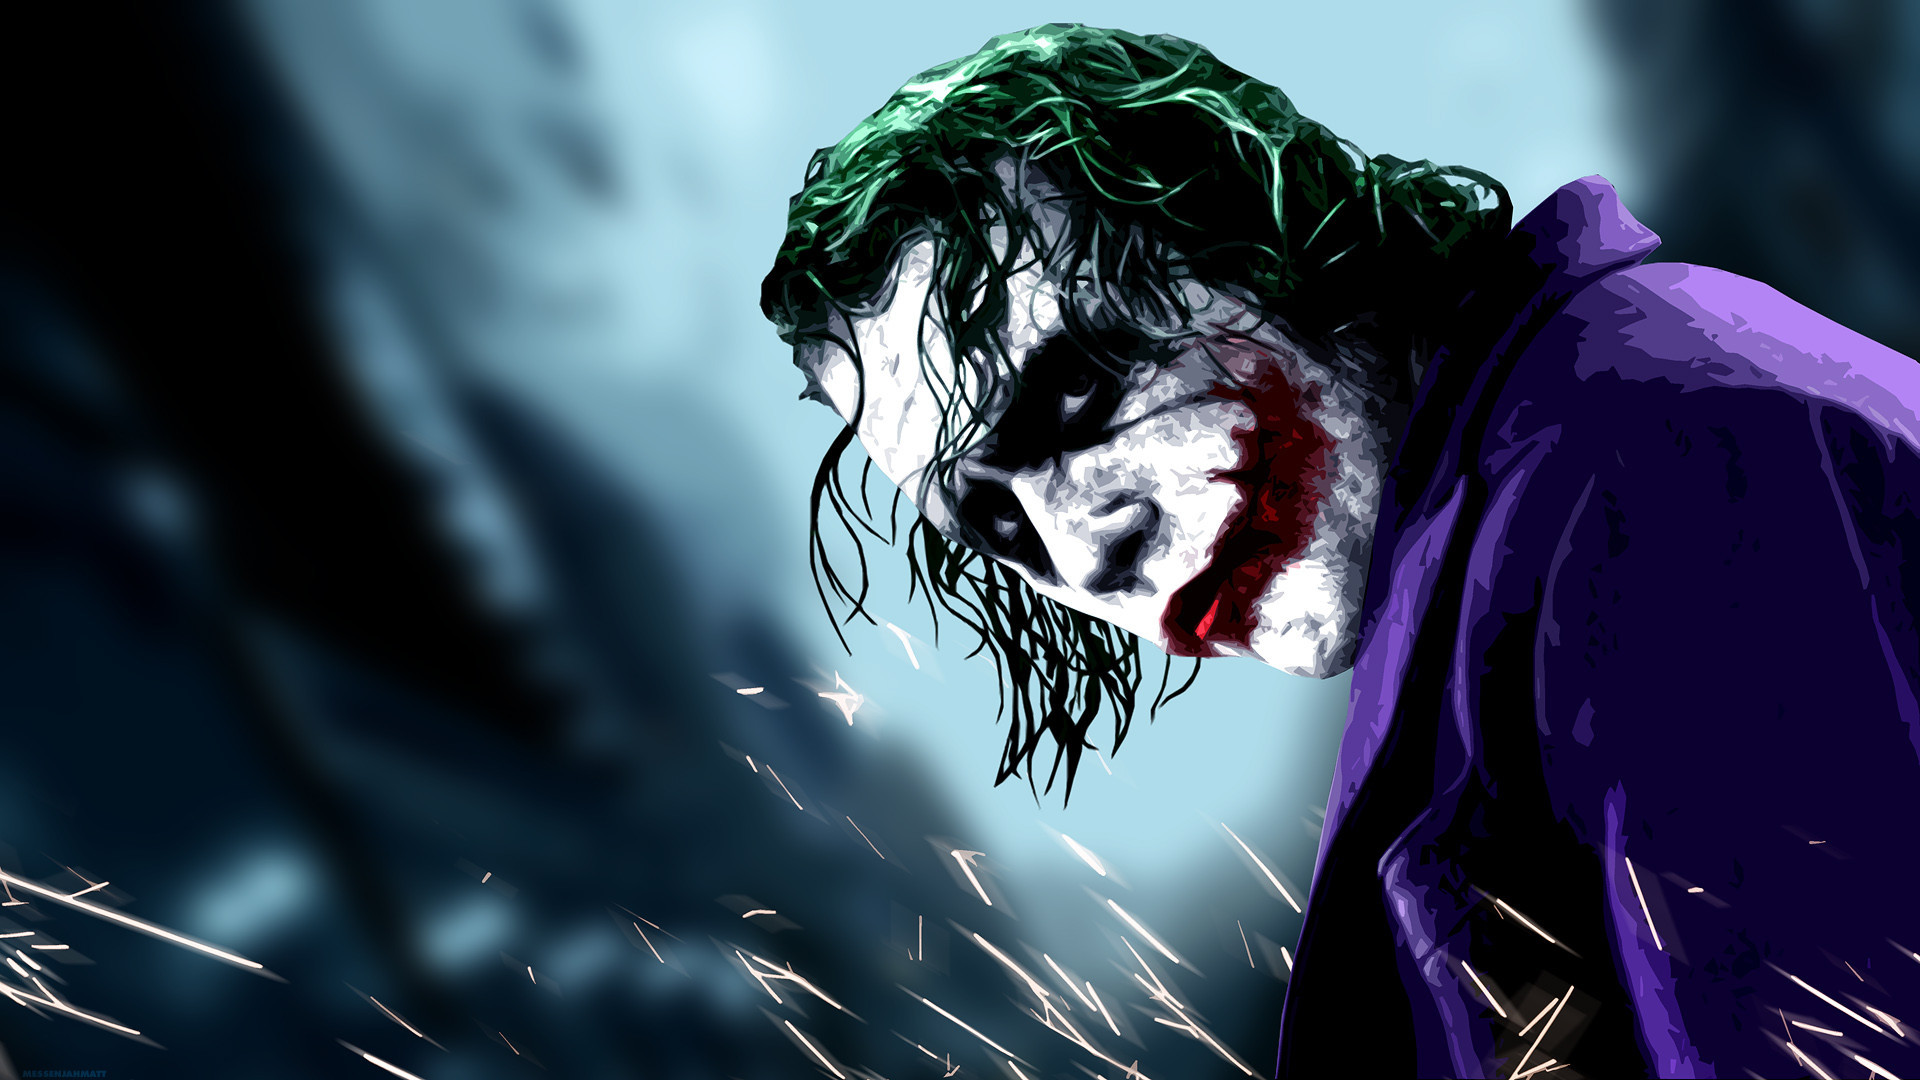 Res: 1920x1080, scary joker wallpaper #450887